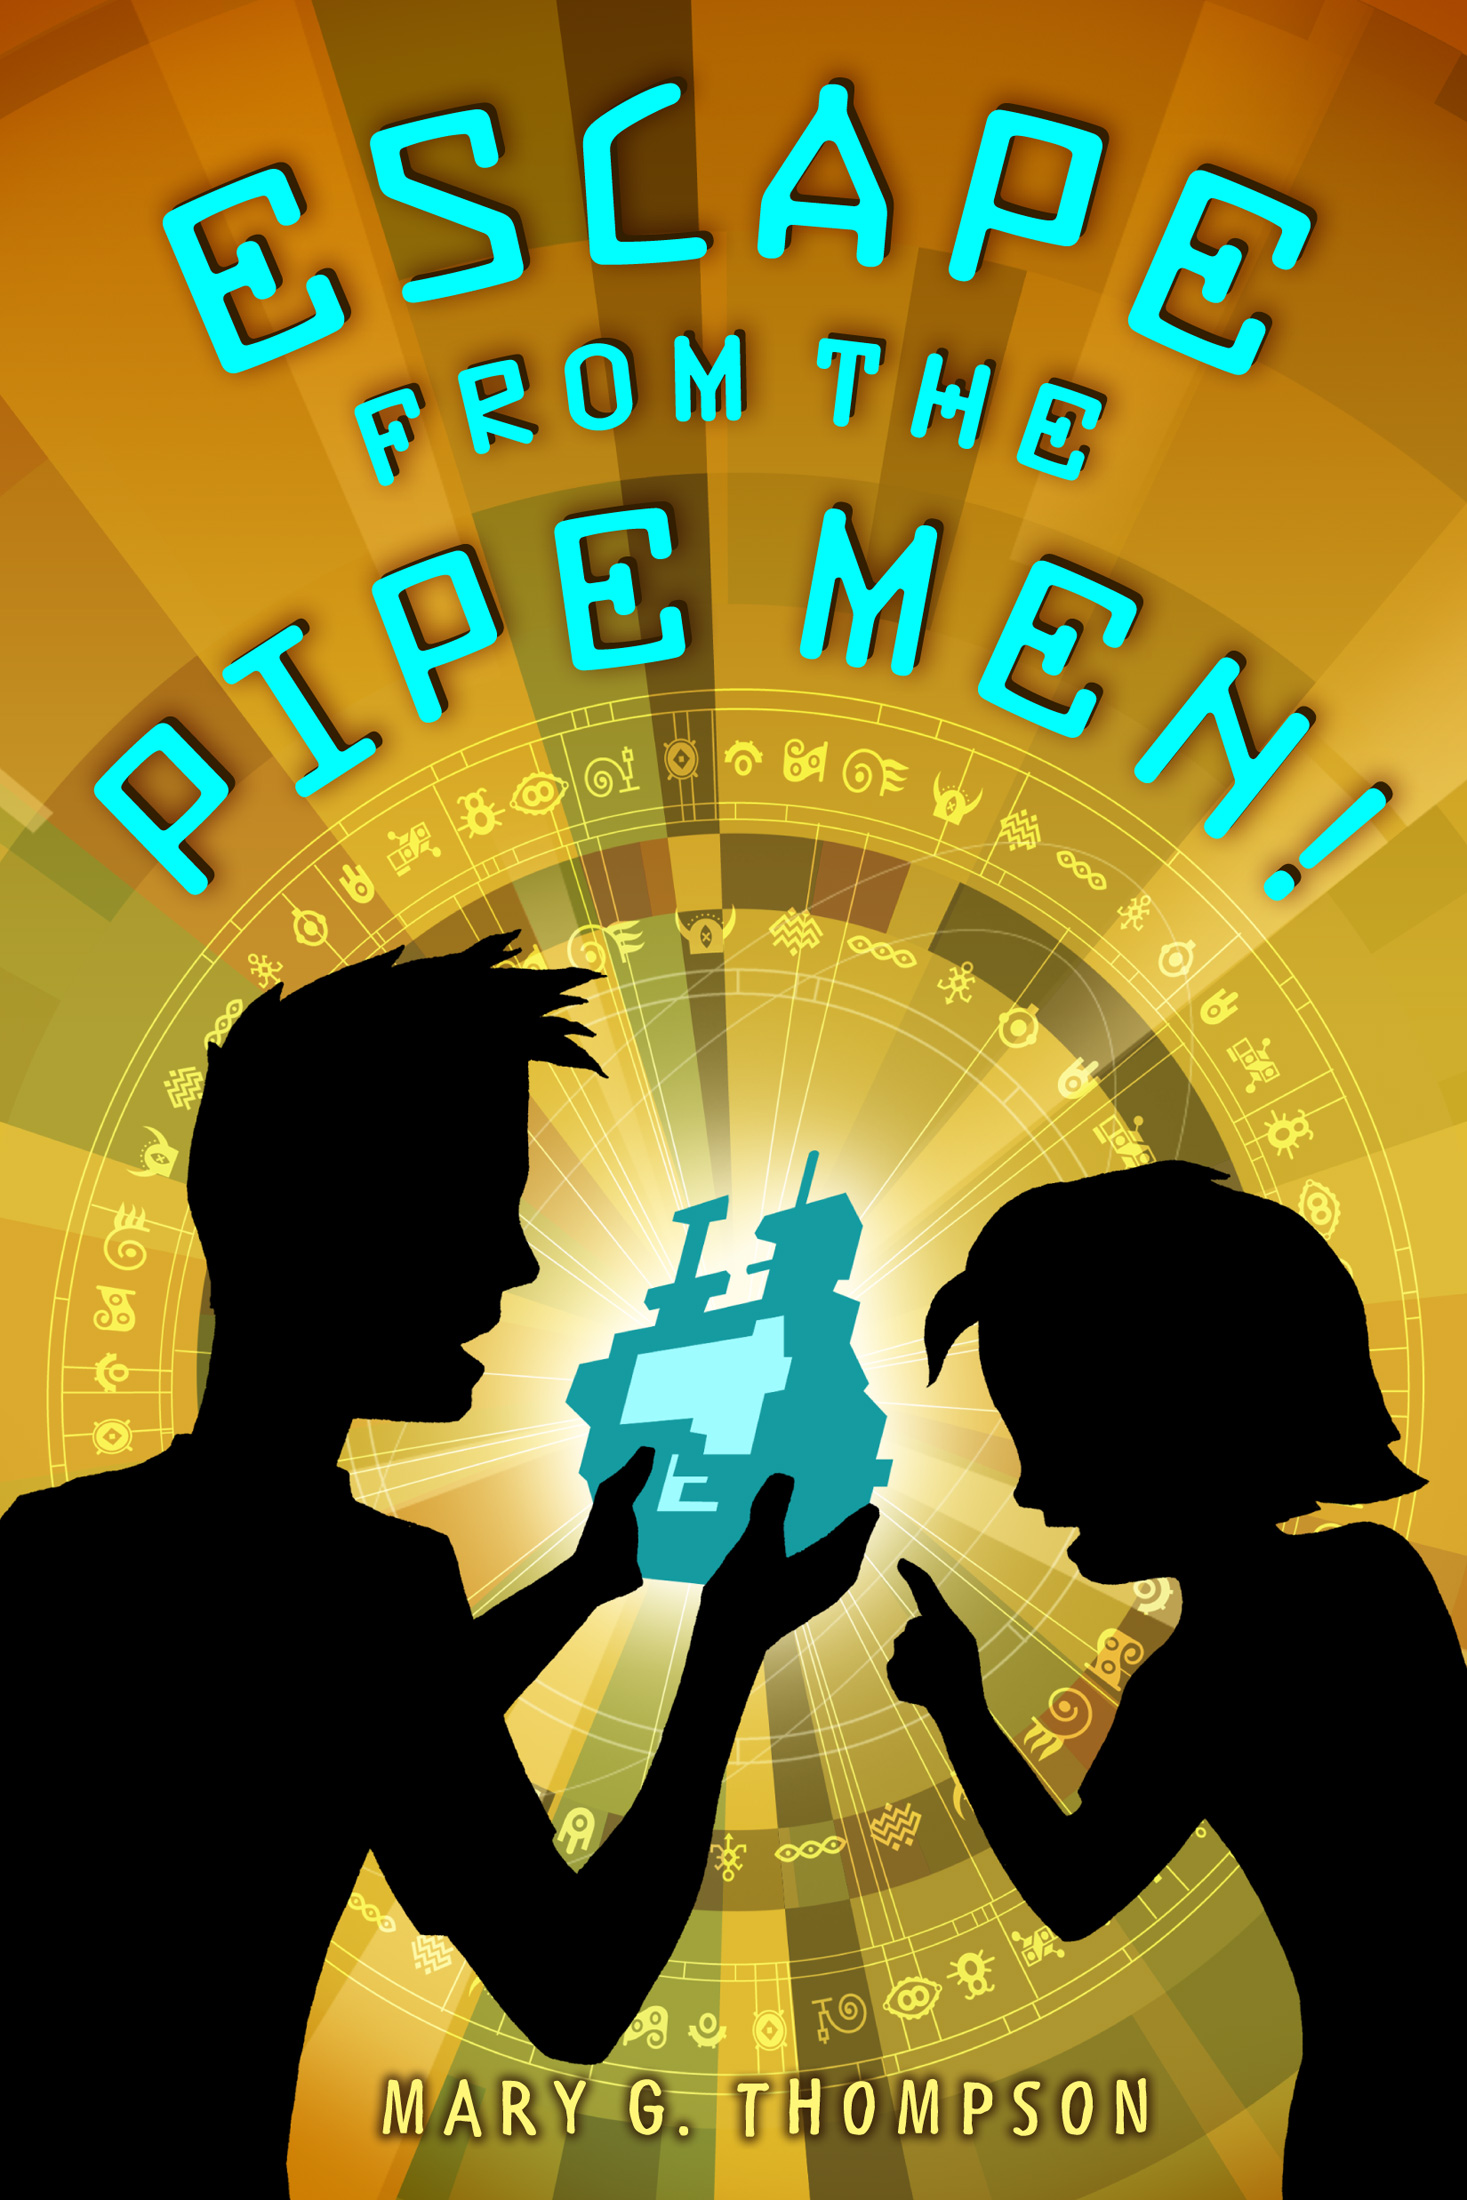 Book Party & Craft Event: Escape from the Pipe Men! by Mary G. Thompson